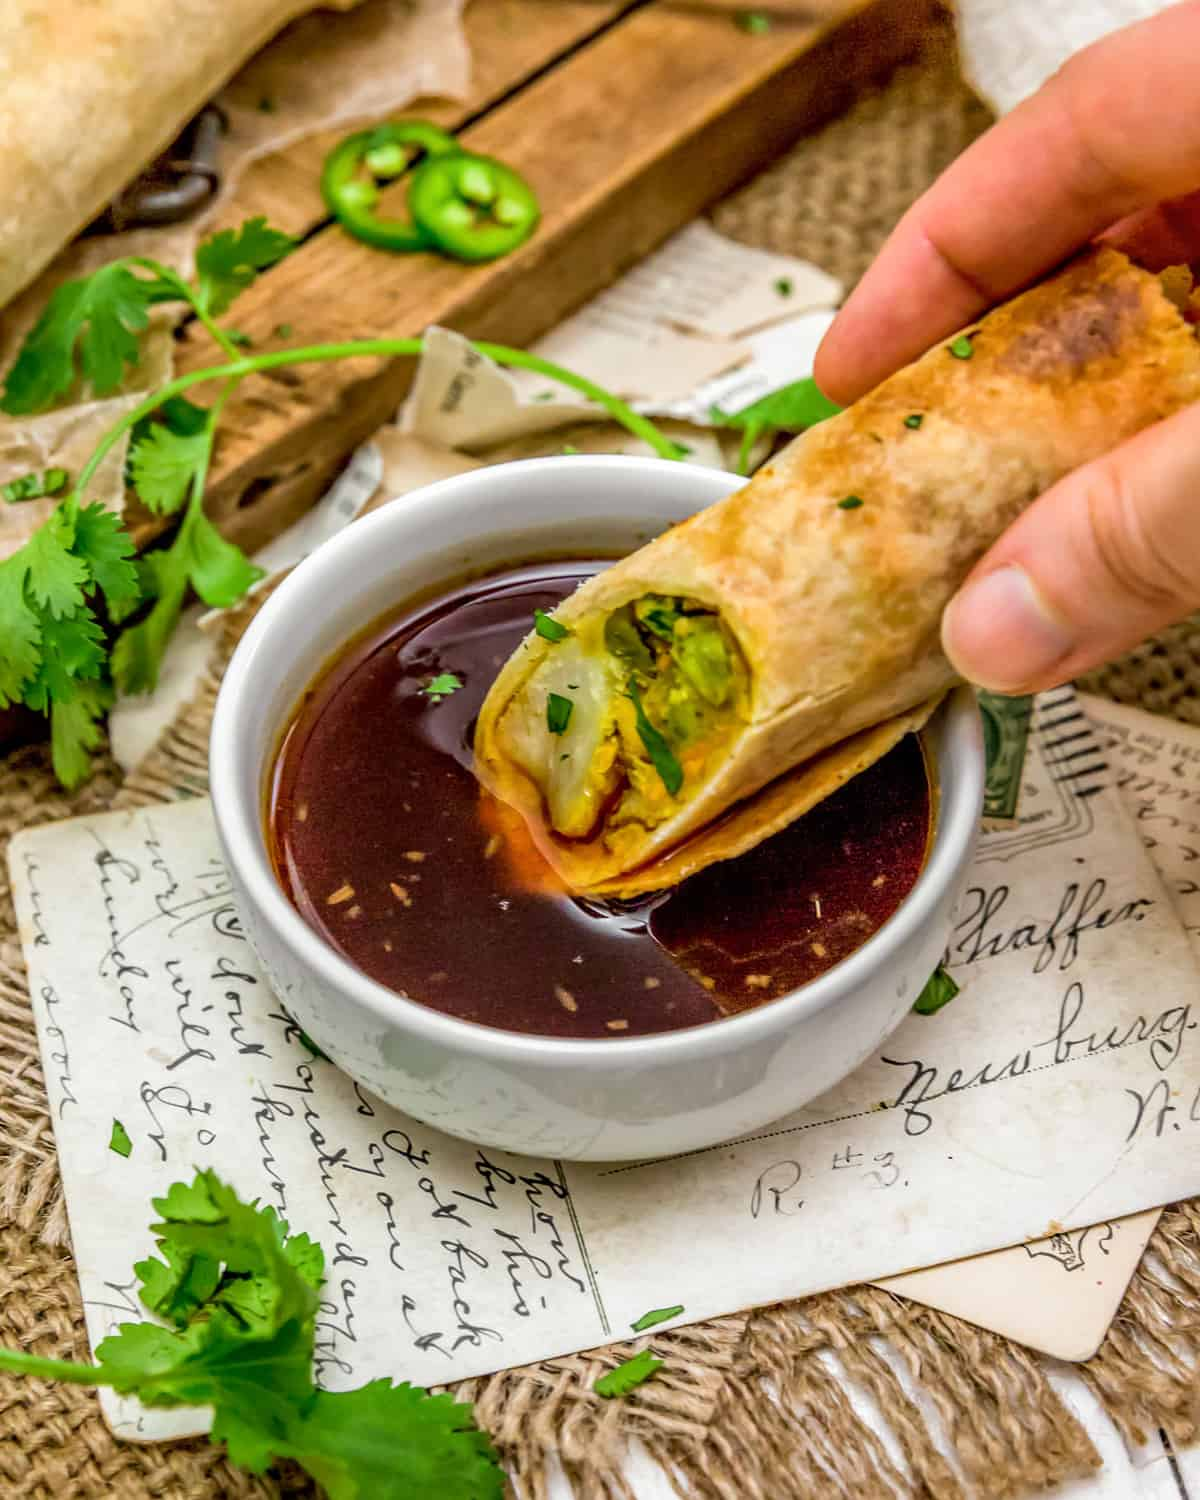 Dipping Vegan Samosa Roll in Sweet and Sour Sauce